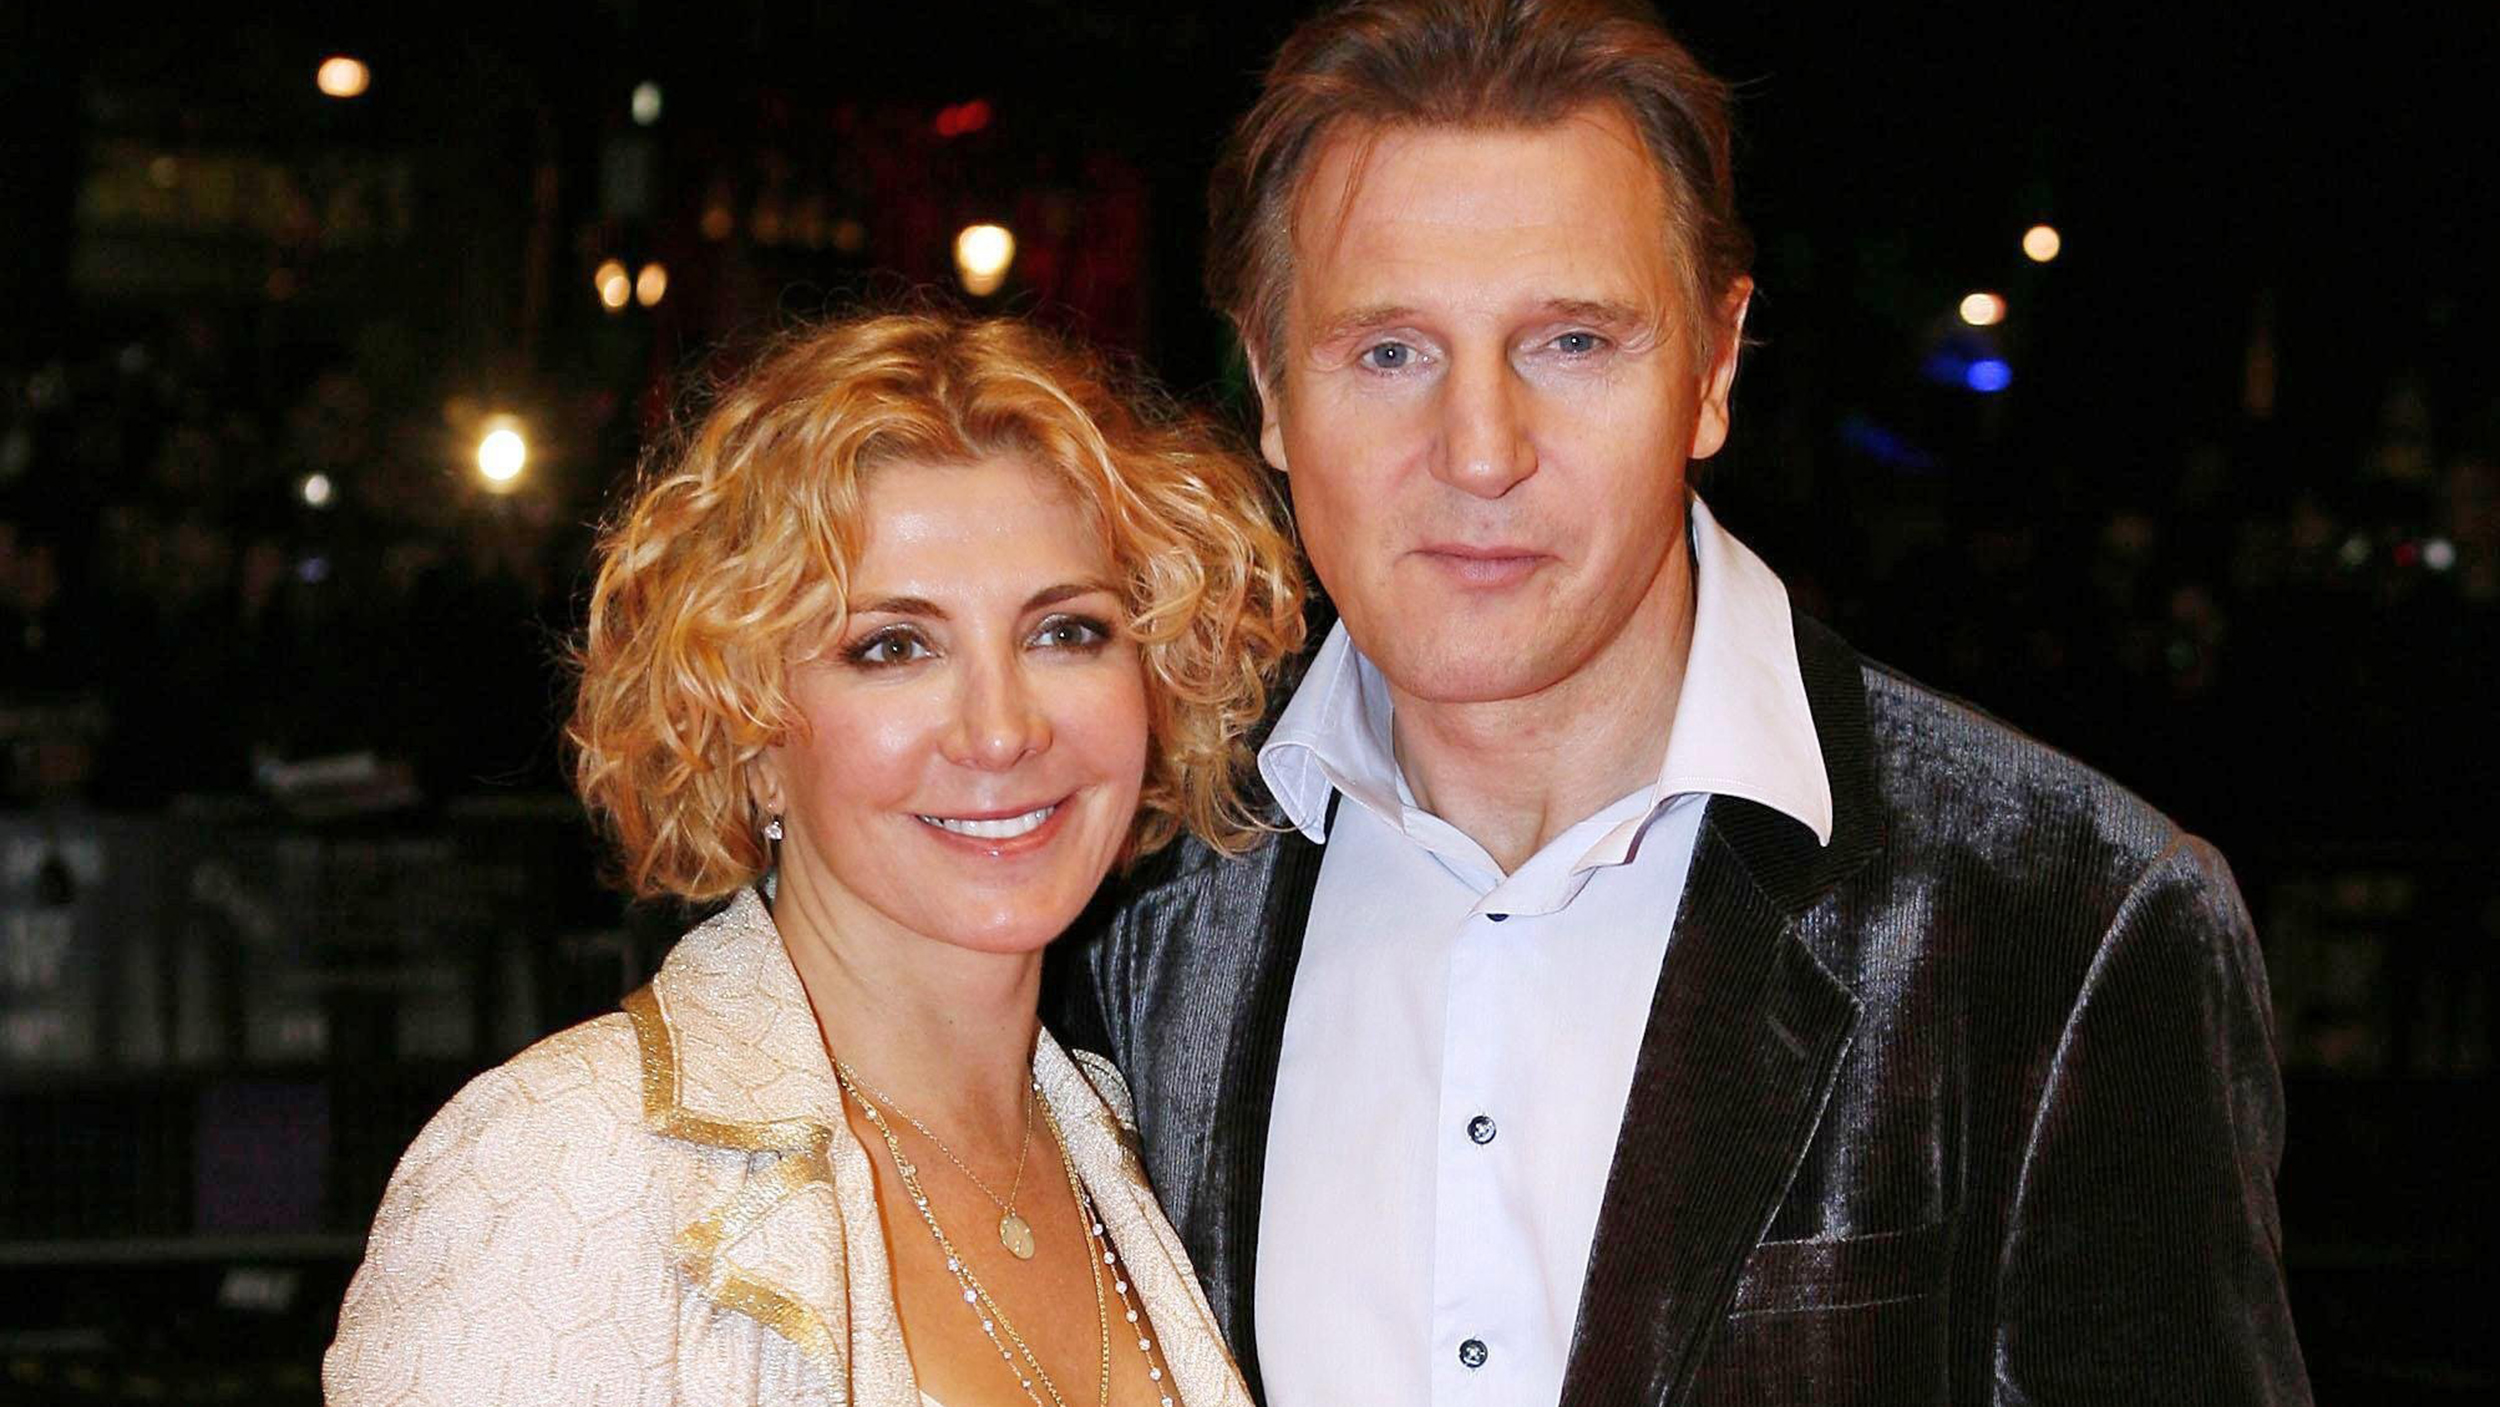 Liam neeson opens up about late wife natasha richardson 39 s for Natasha richardson liam neeson wedding